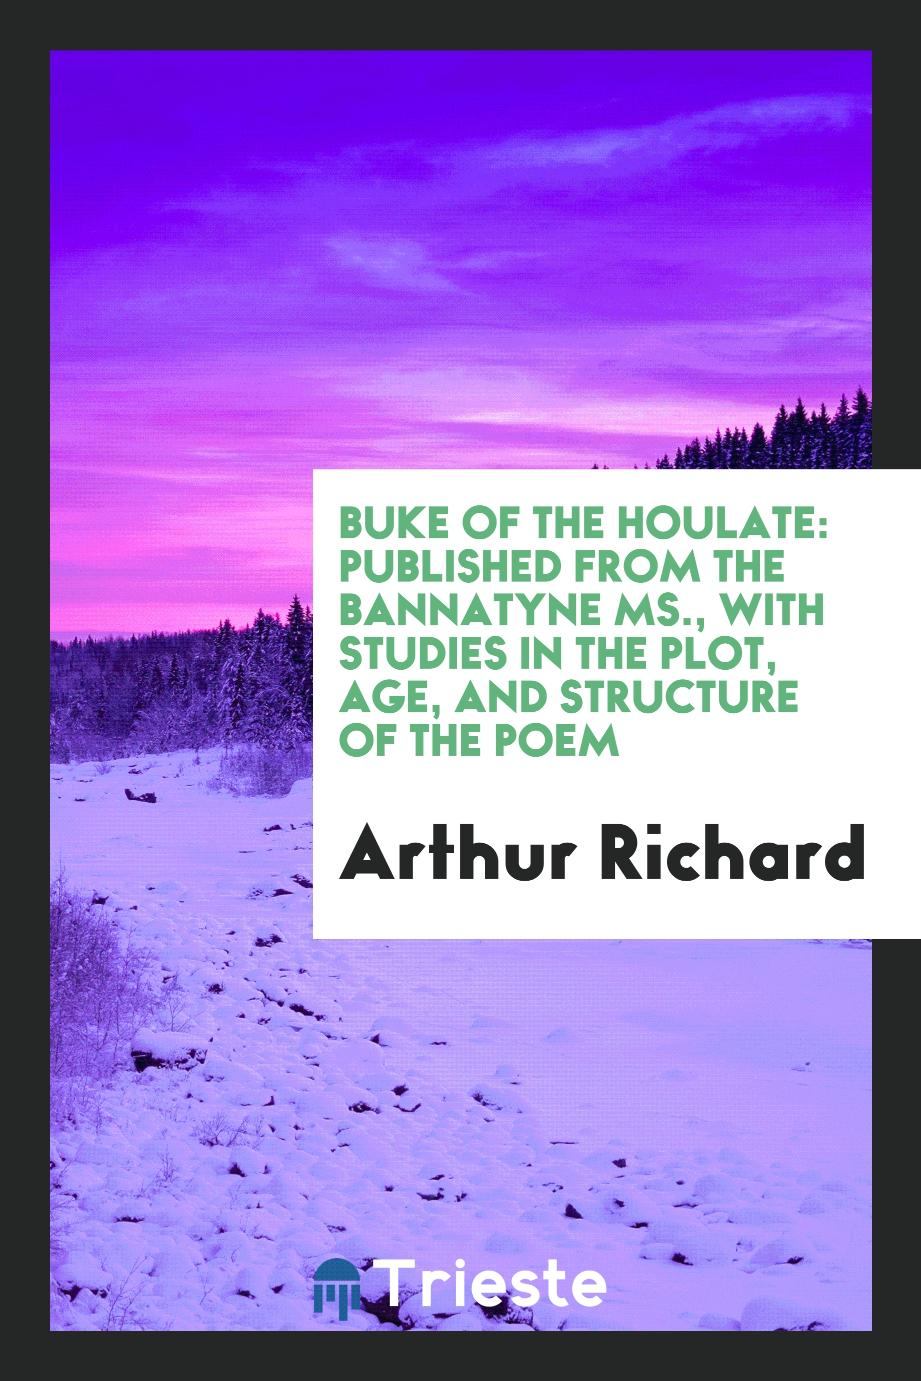 Buke of the Houlate: Published from the Bannatyne MS., with Studies in the Plot, Age, and Structure of the Poem